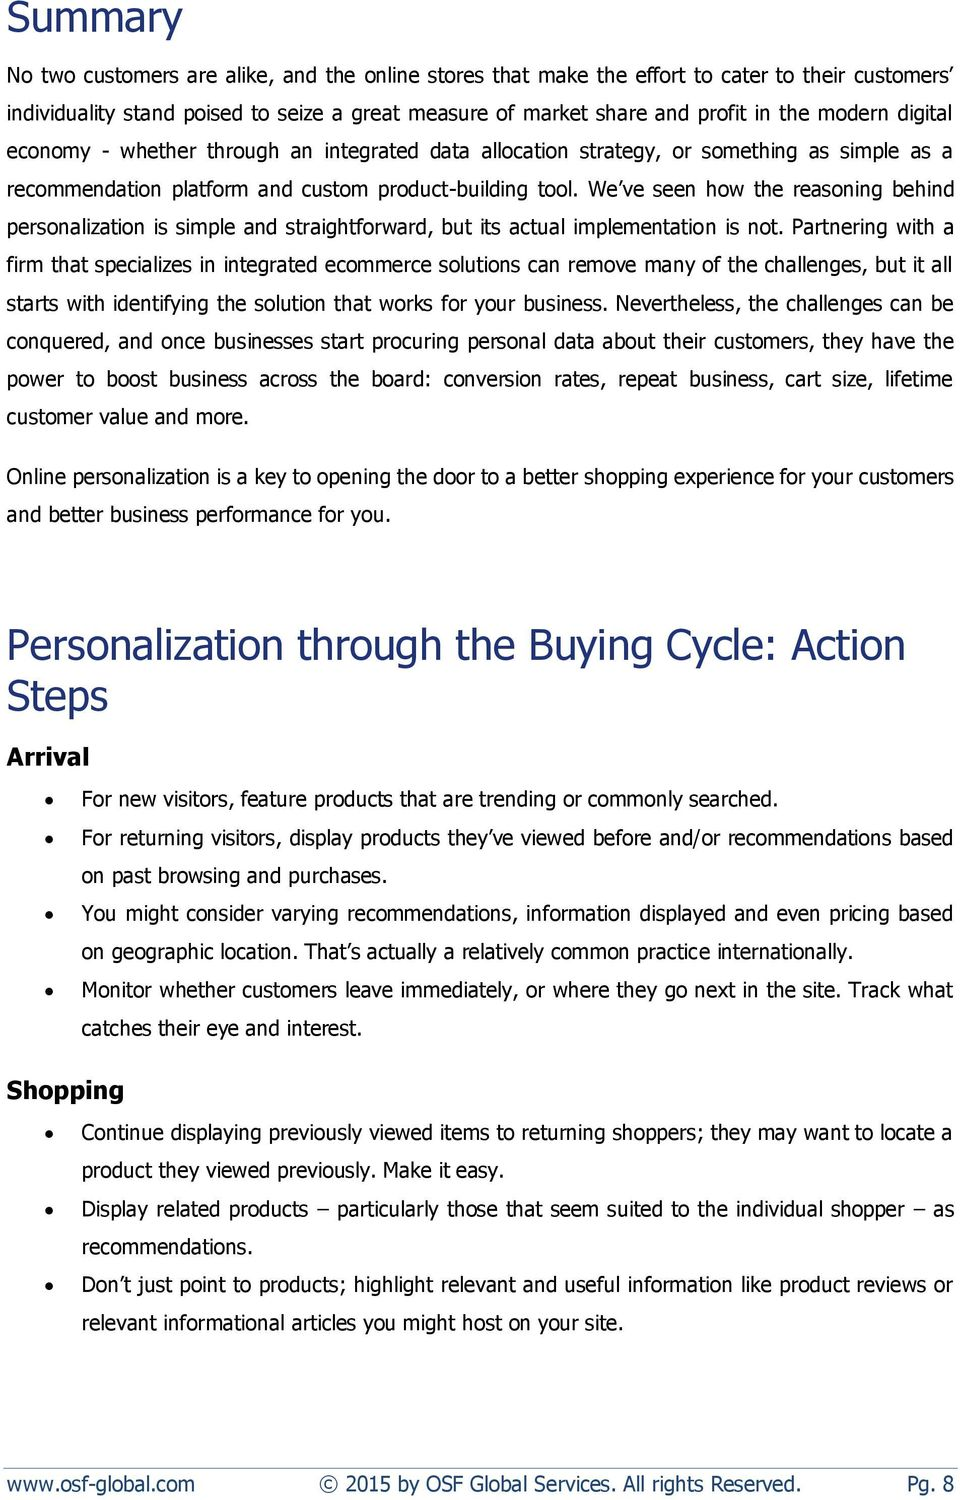 We ve seen how the reasoning behind personalization is simple and straightforward, but its actual implementation is not.